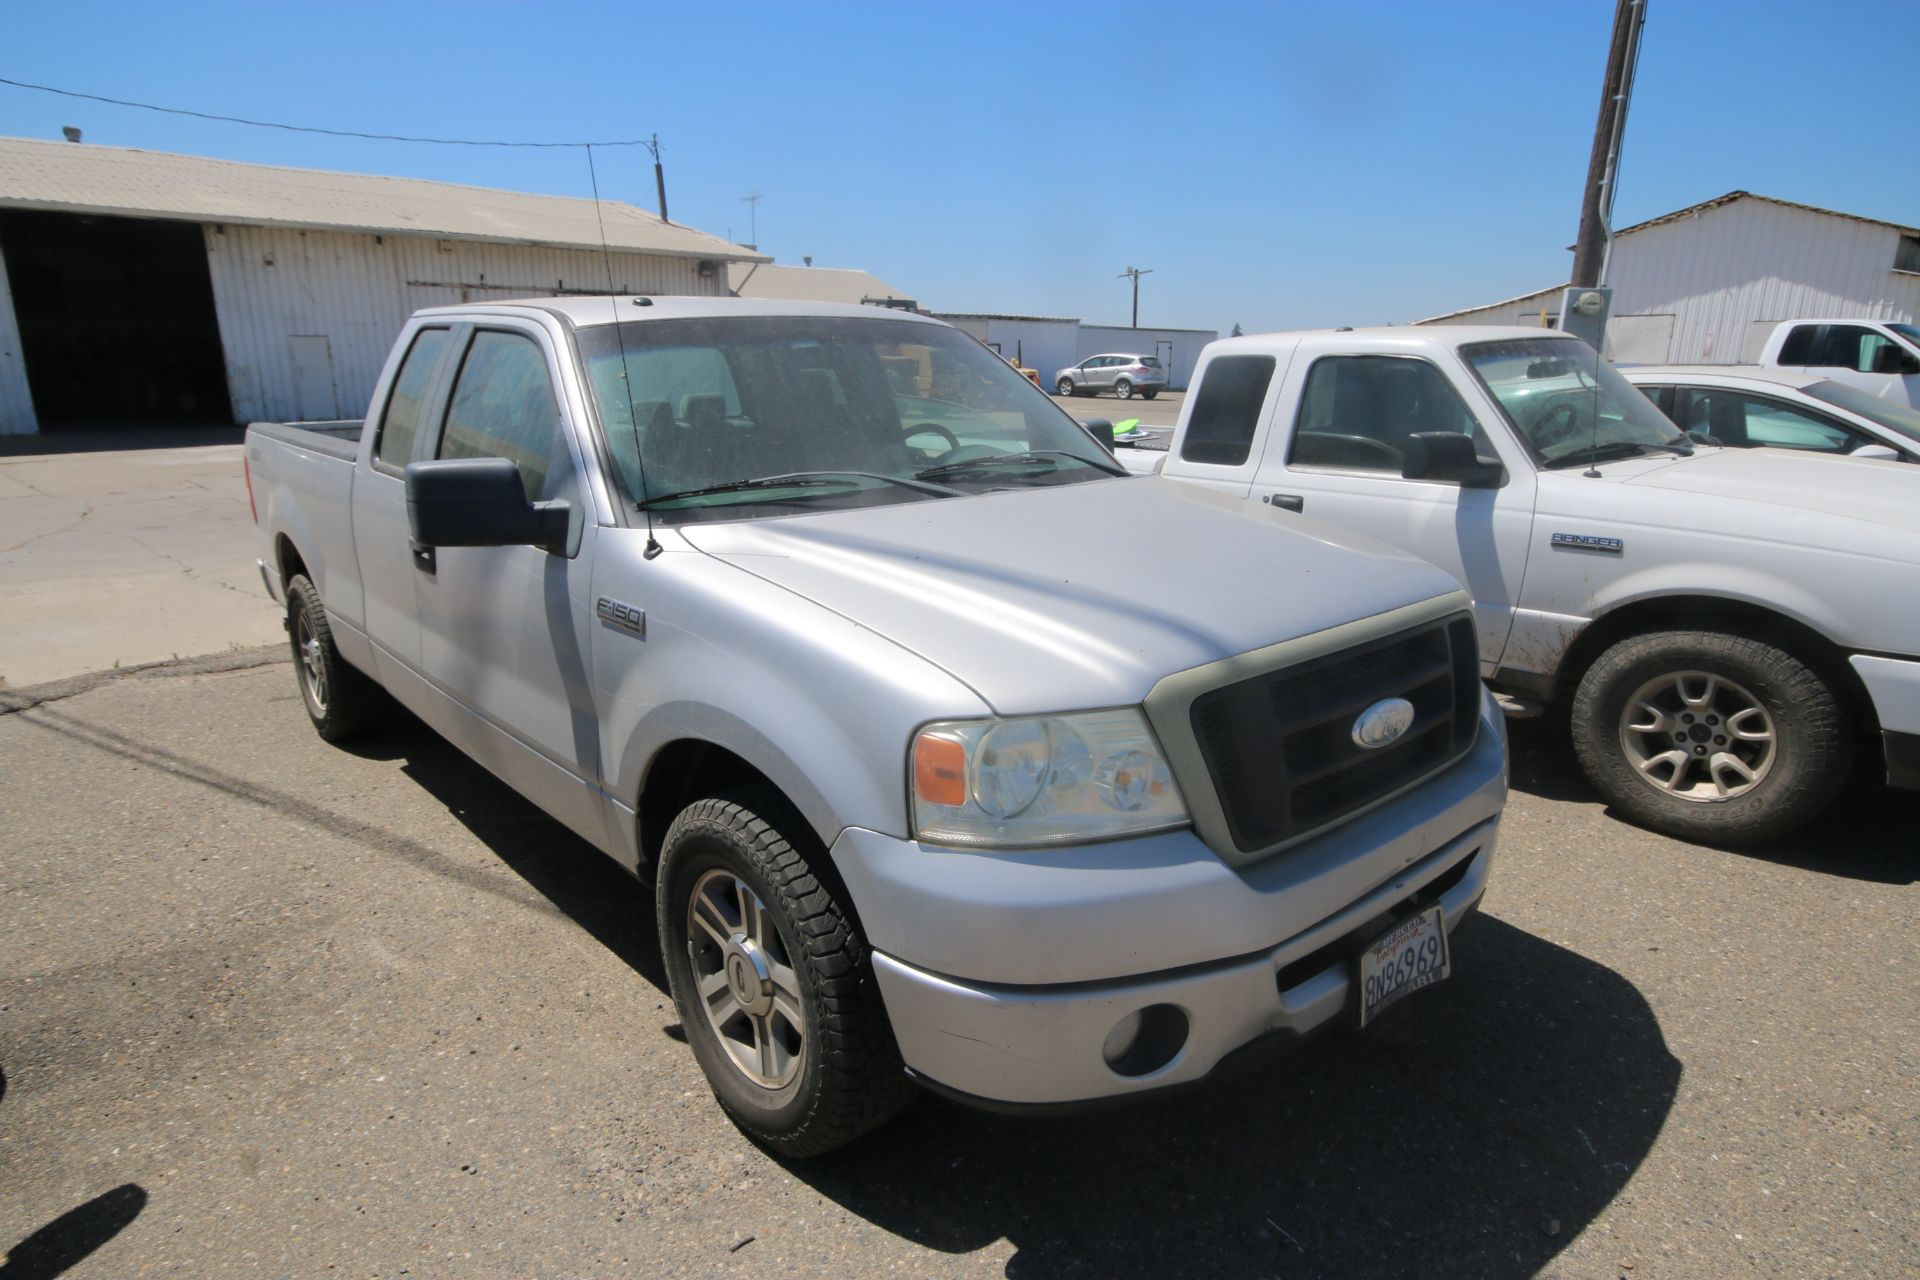 2008 Ford F150 Pick Up Truck, VIN #: 1FTRX12W7BFB9710, with 214,817 Miles, Started Up as of 06/24/ - Image 2 of 24